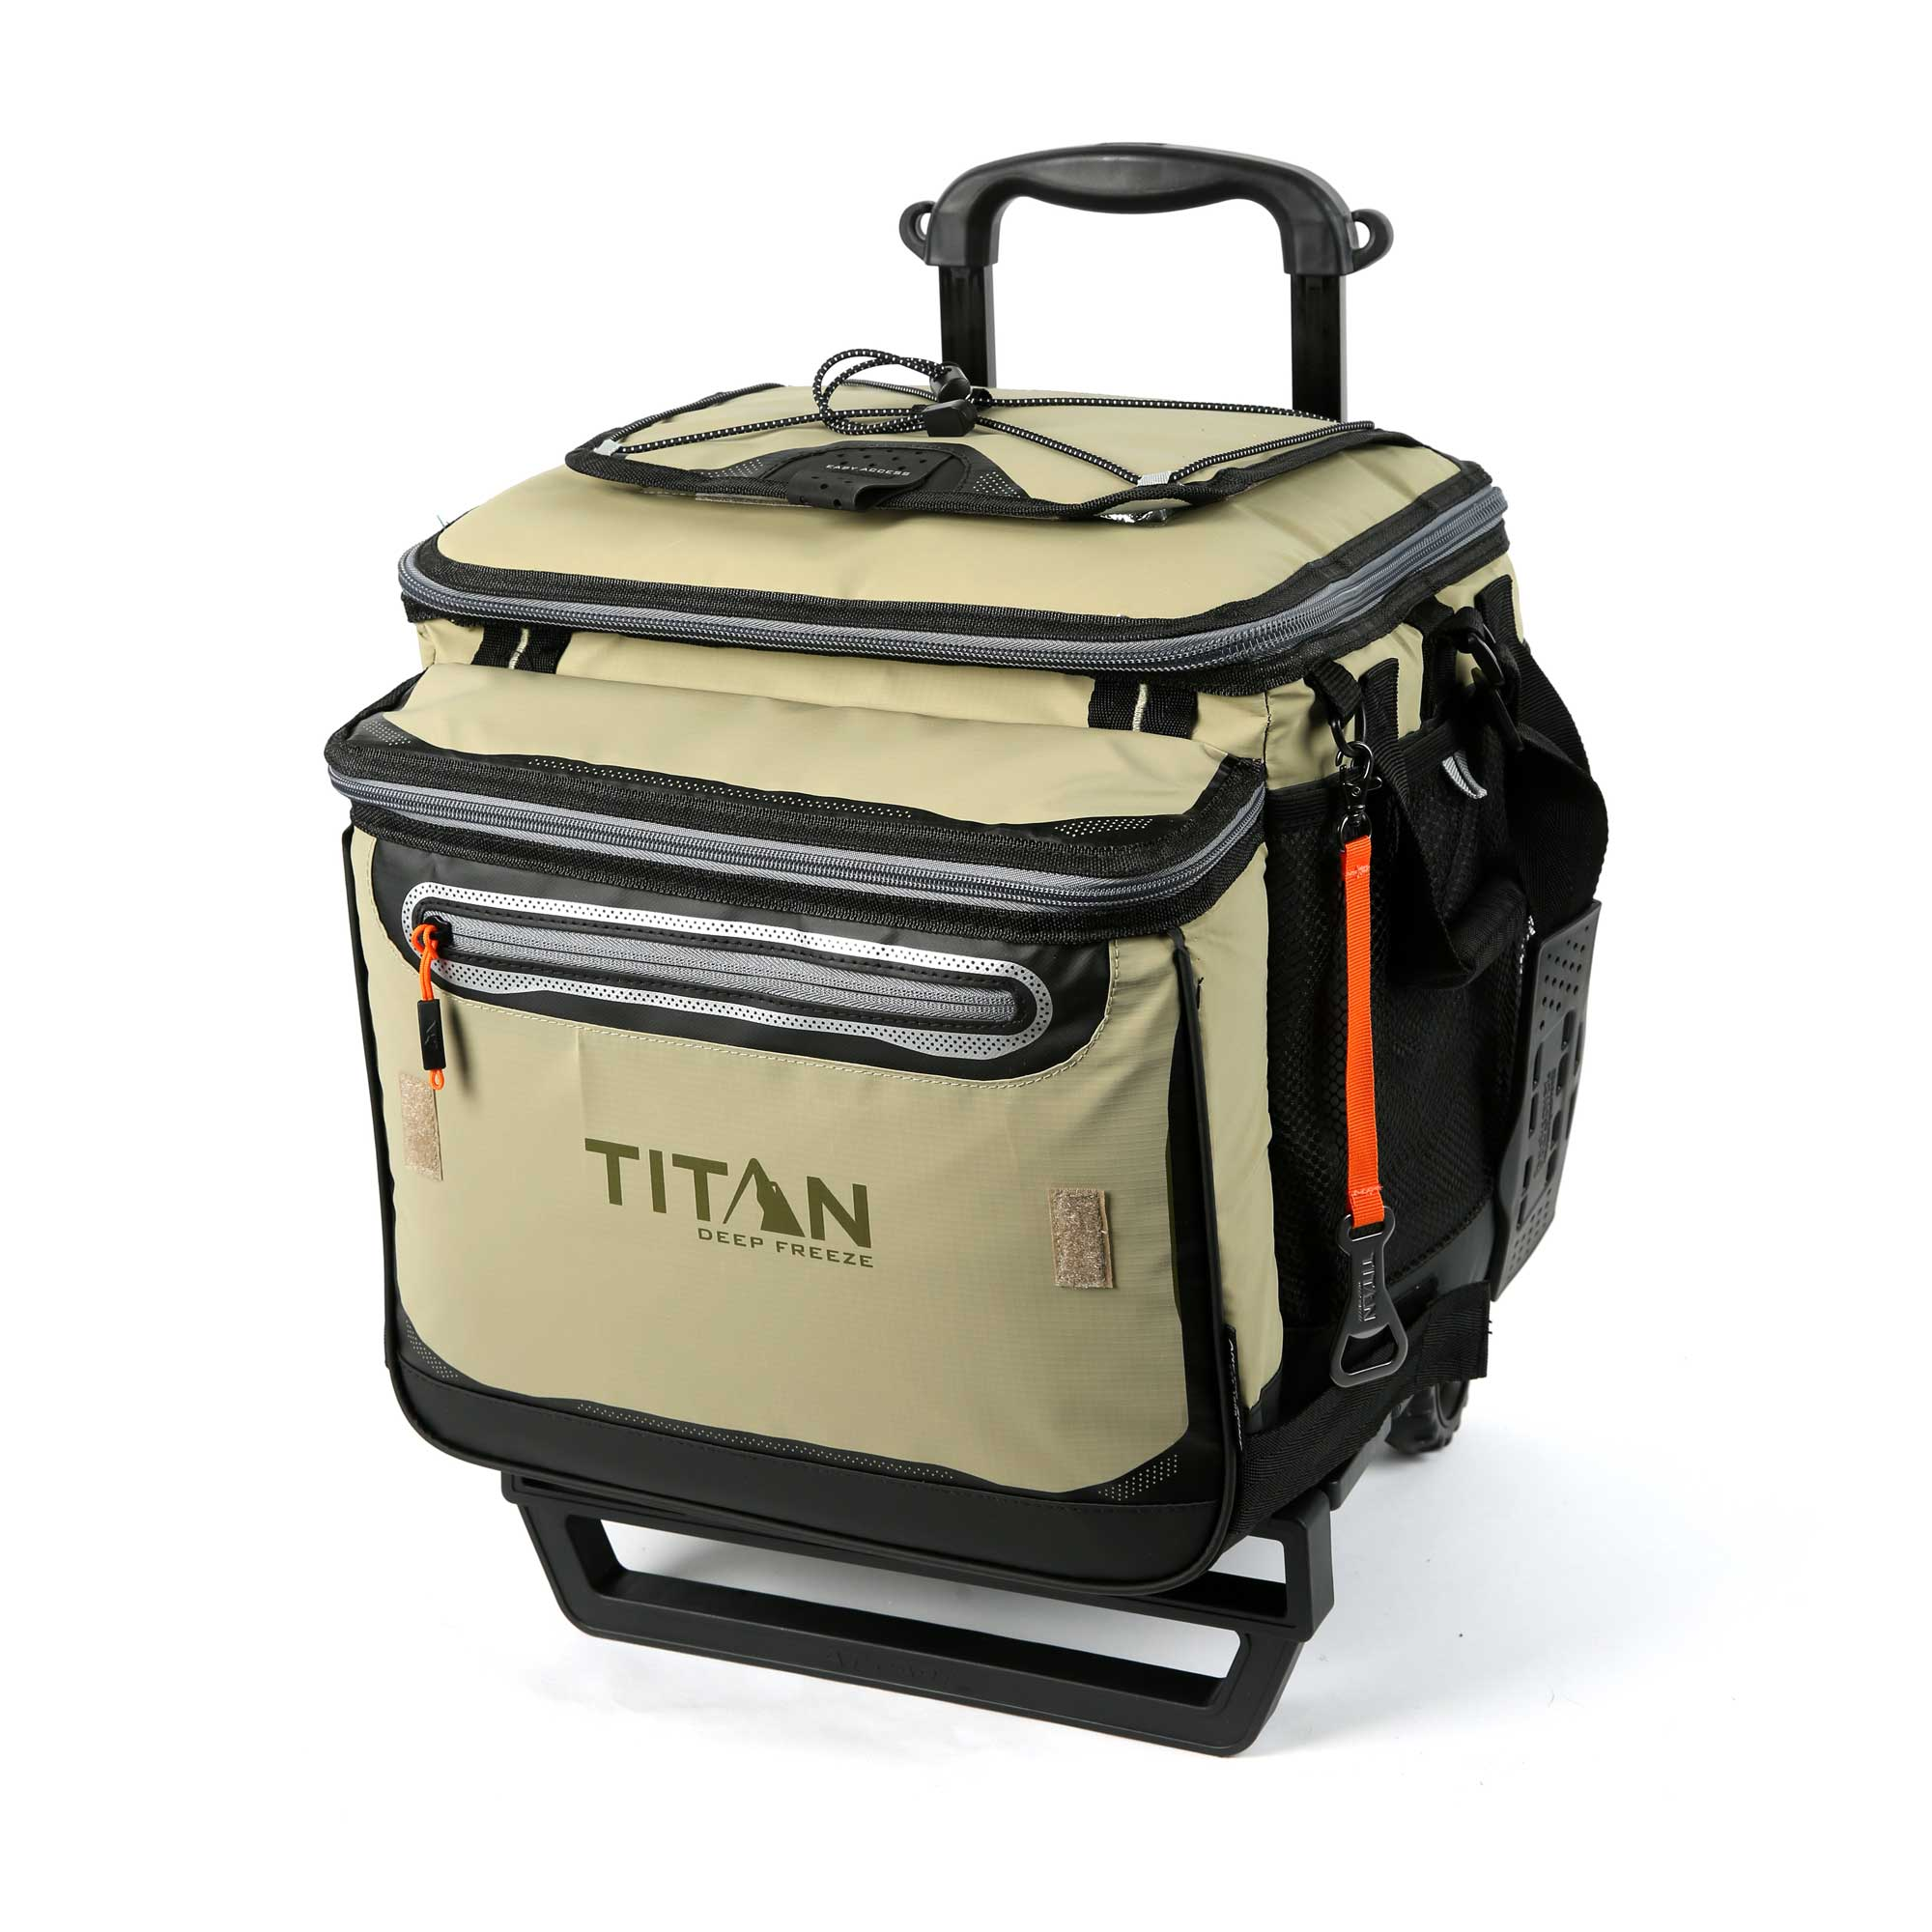 60 (50+10) Can Titan Deep Freeze® Rolling Cooler - Moss